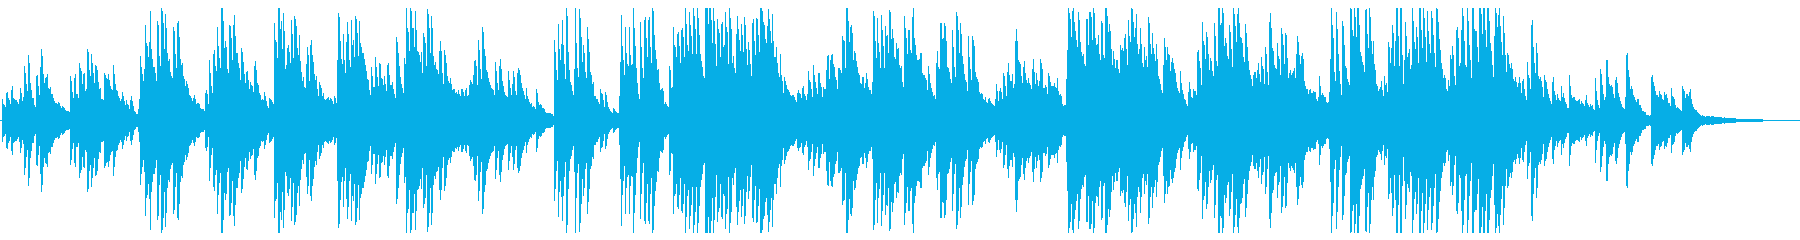 A song with a pleasant piano sound's reproduced waveform